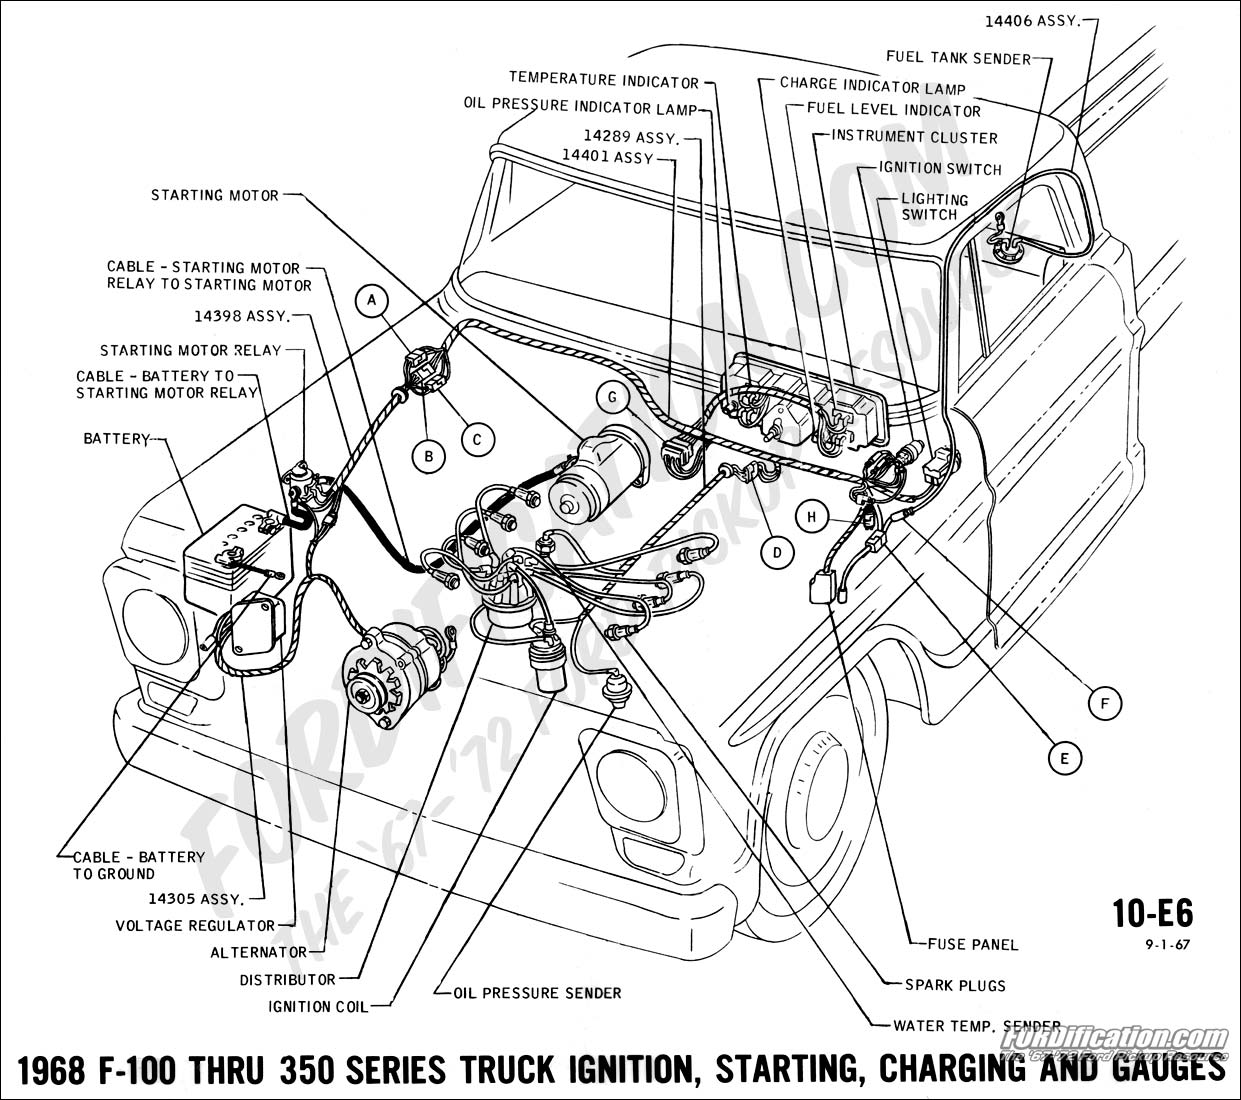 1970 Ford F150 Wiring Diagram Worksheet And Schematic Truck Harness Detailed Schematics Rh Mrskindsclass Com 2005 F 150 Radio